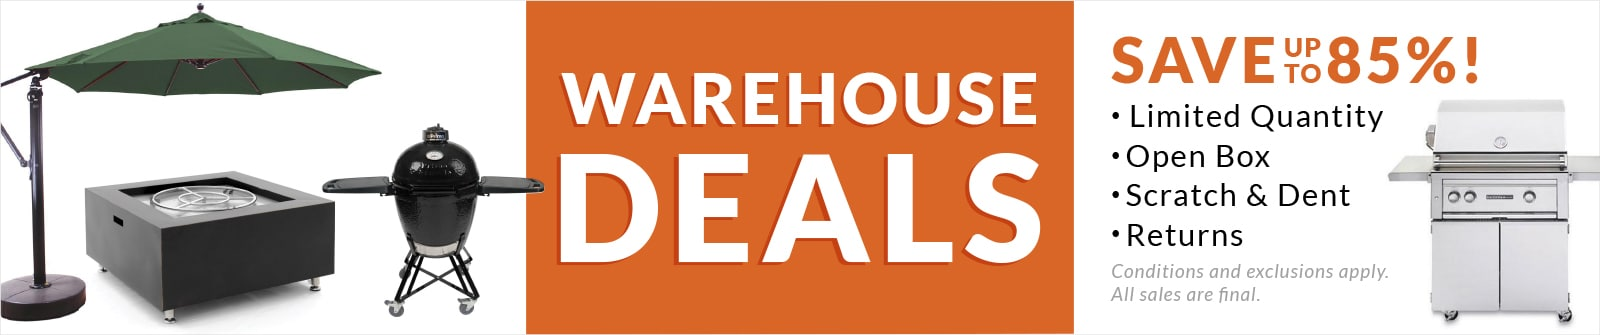 Warehouse Deals Banner